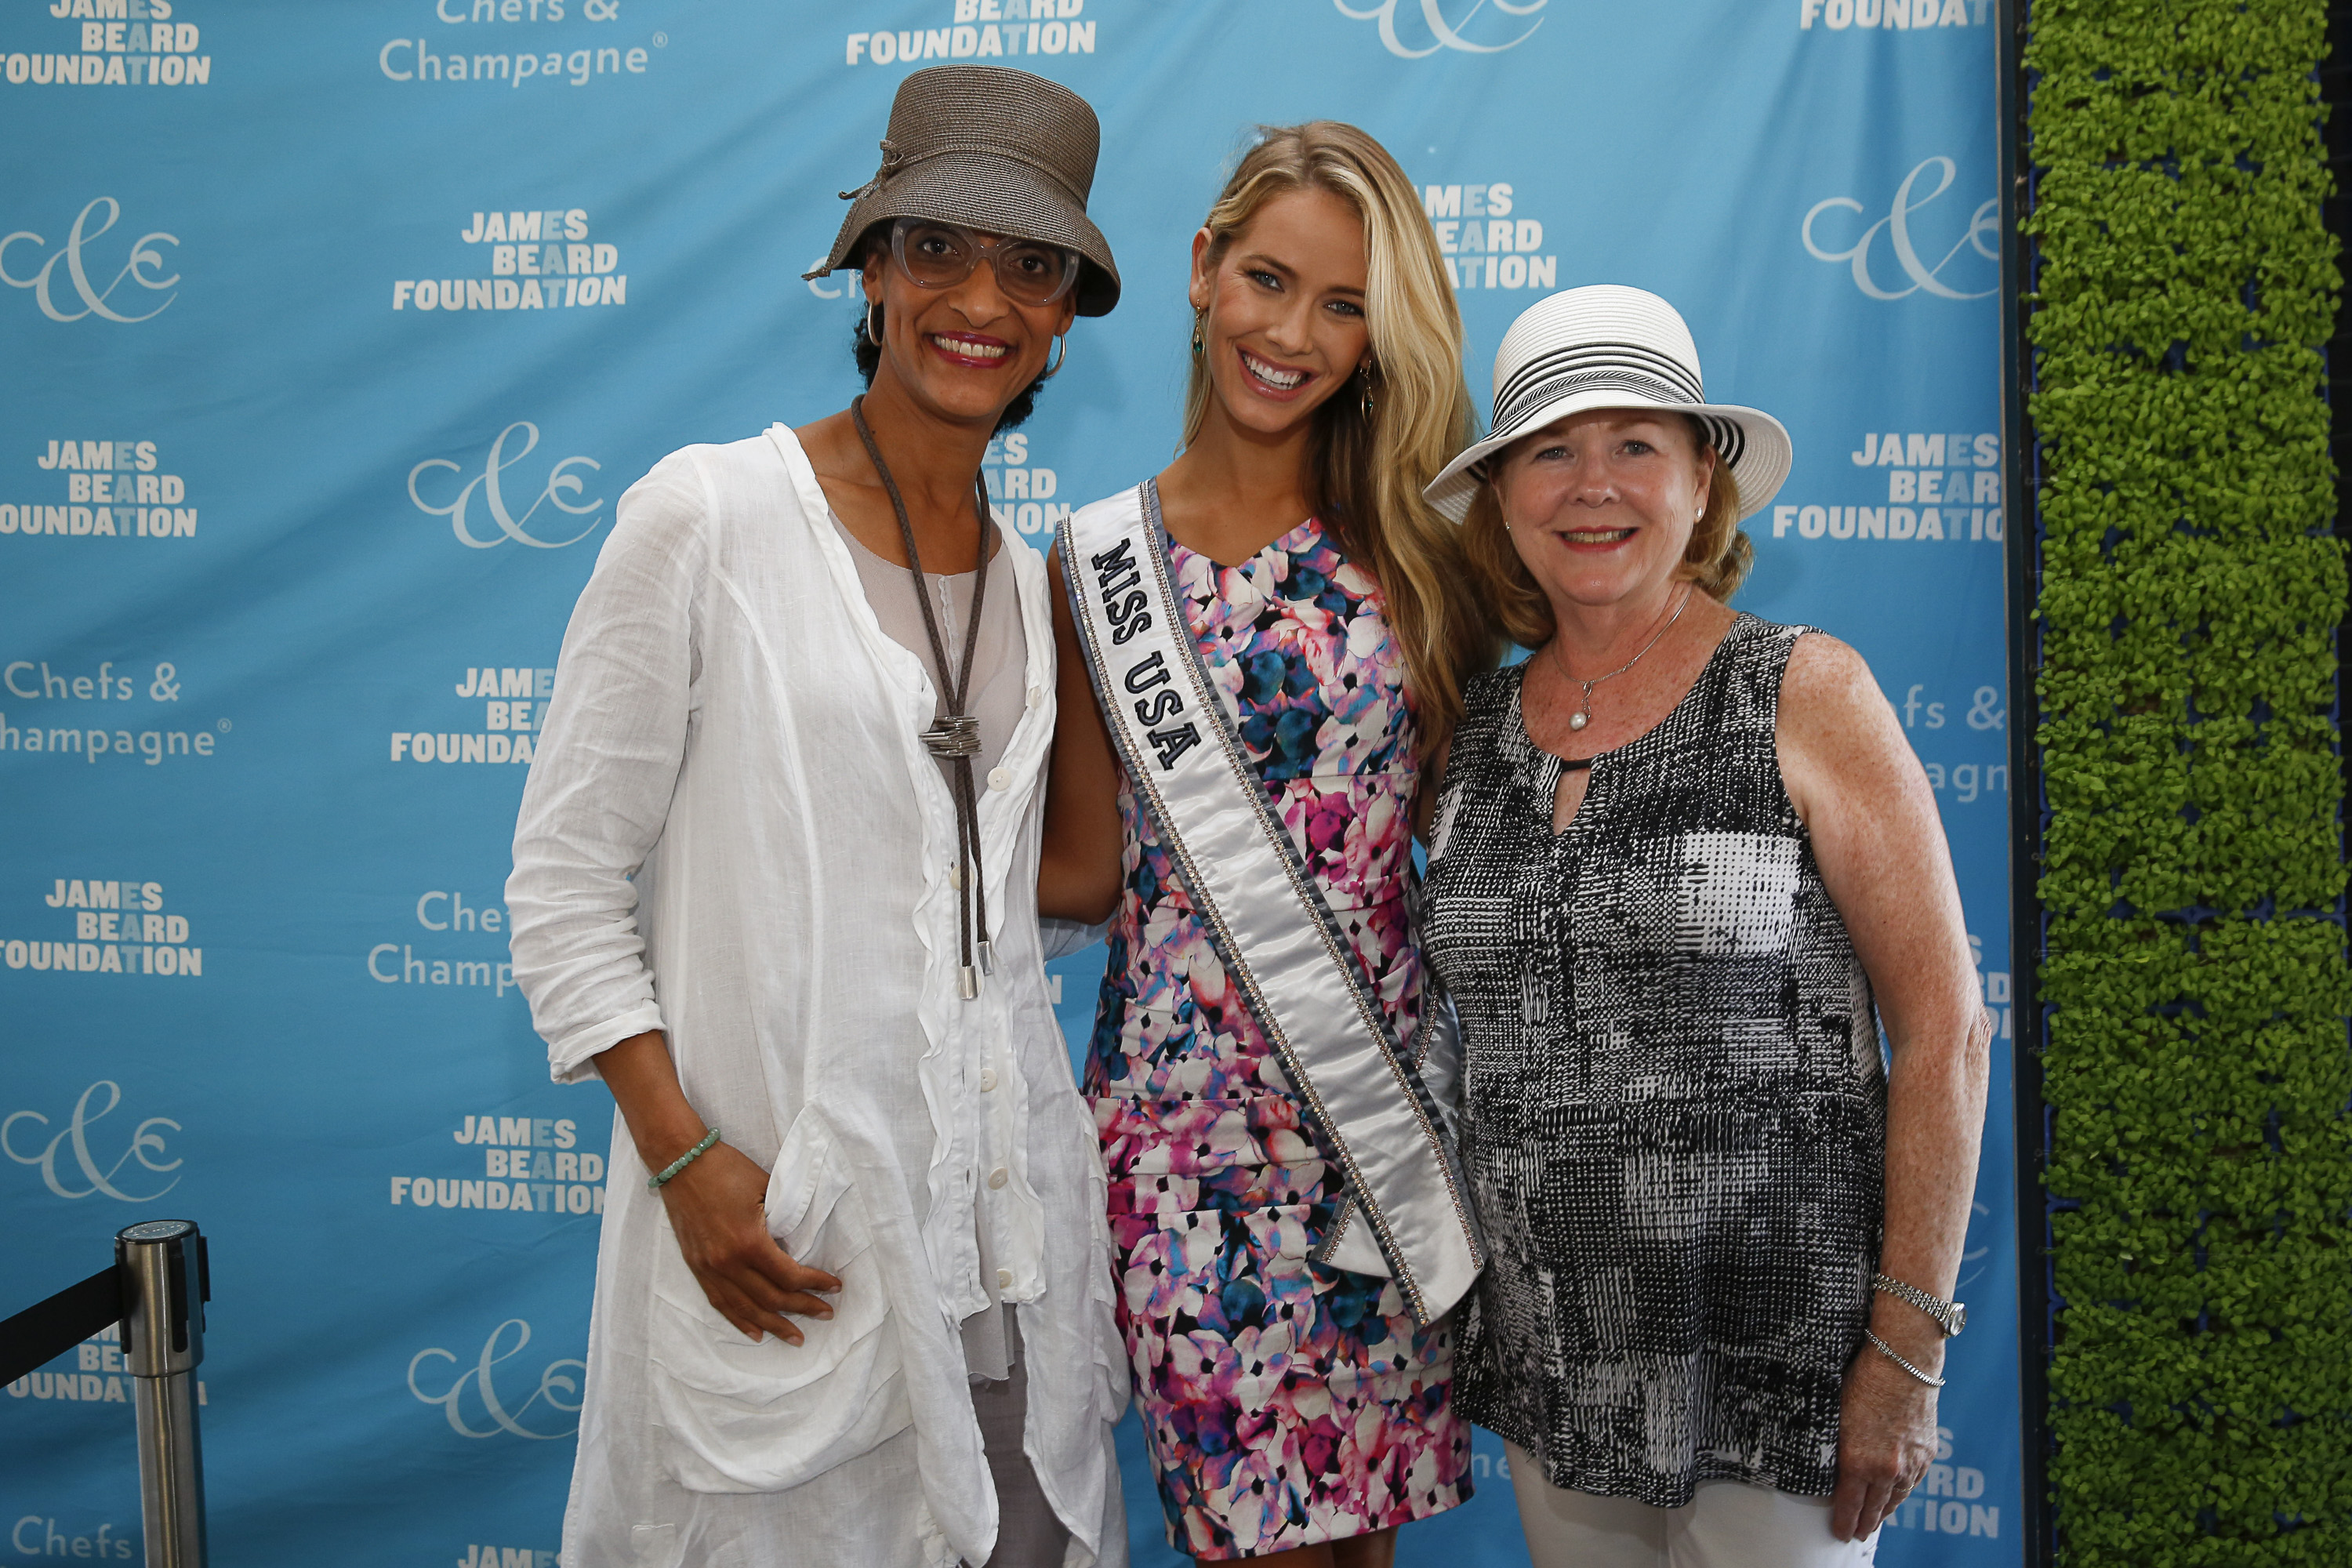 Honoree Chef Carla Hall, Miss USA Olivia Jordan and President of the James Beard Foundation Susan Ungaro seen at James Beard Foundation's Chefs & Champagne at Wolffer Estate on Saturday, July 25, 2015 in Sagaponack, N.Y. (credit: mark von holden/invision for james beard foundation/ap Images)